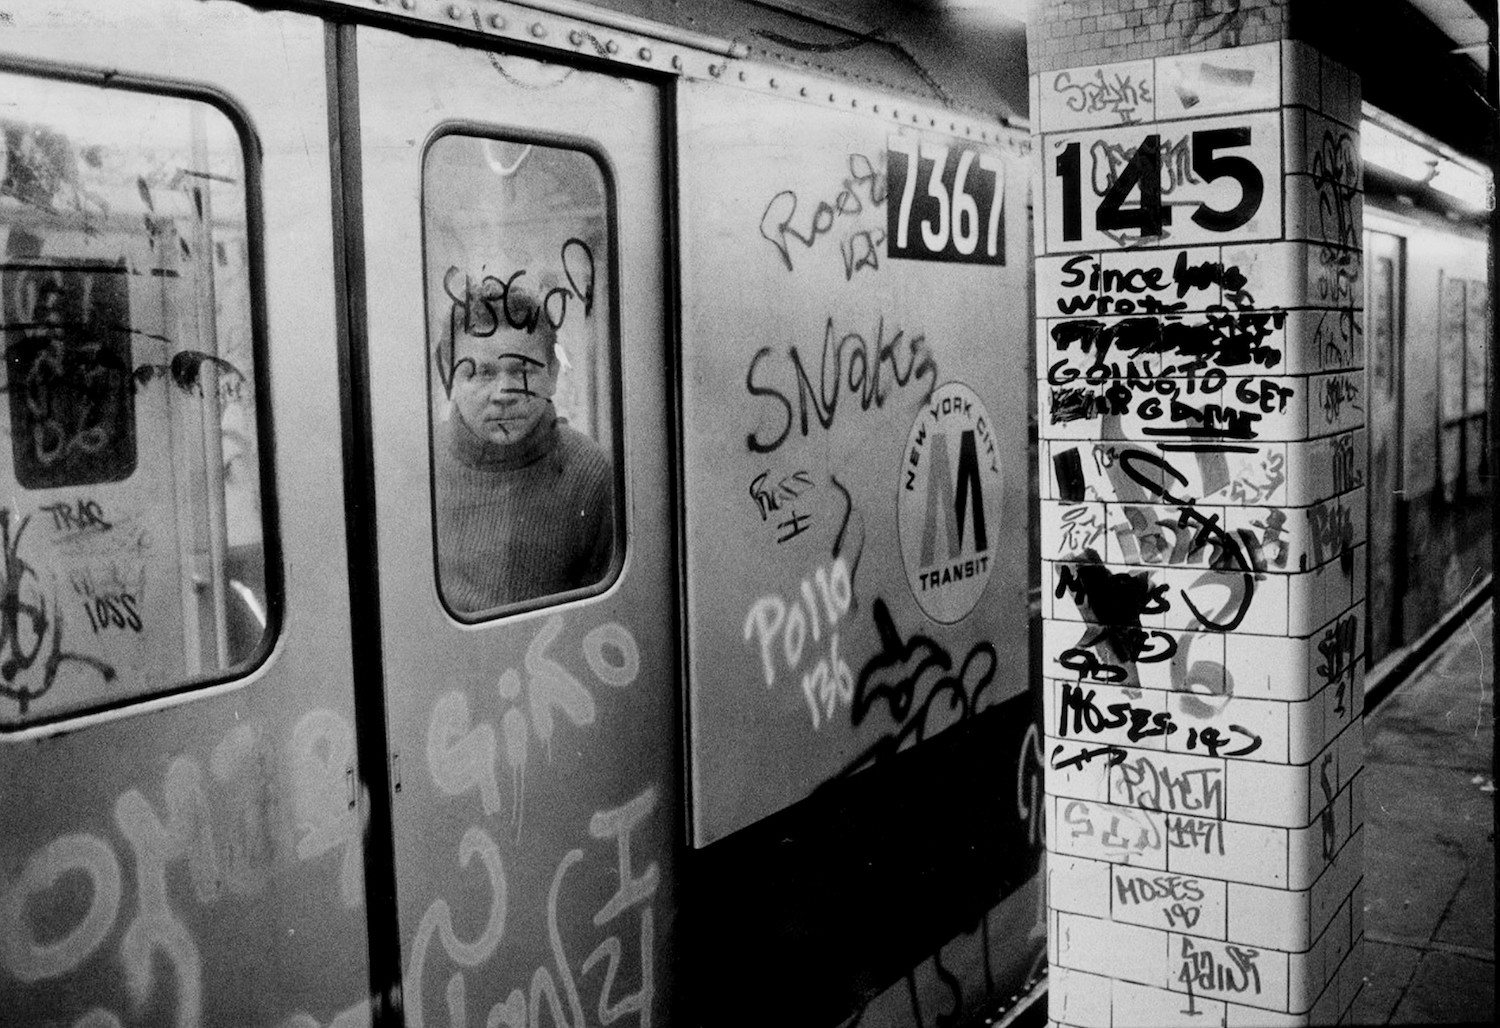 """The subway is the ironclad symbol of """"the city that never sleeps"""". Photography by Richard Corkery/NY Daily News Archive via Getty Images"""